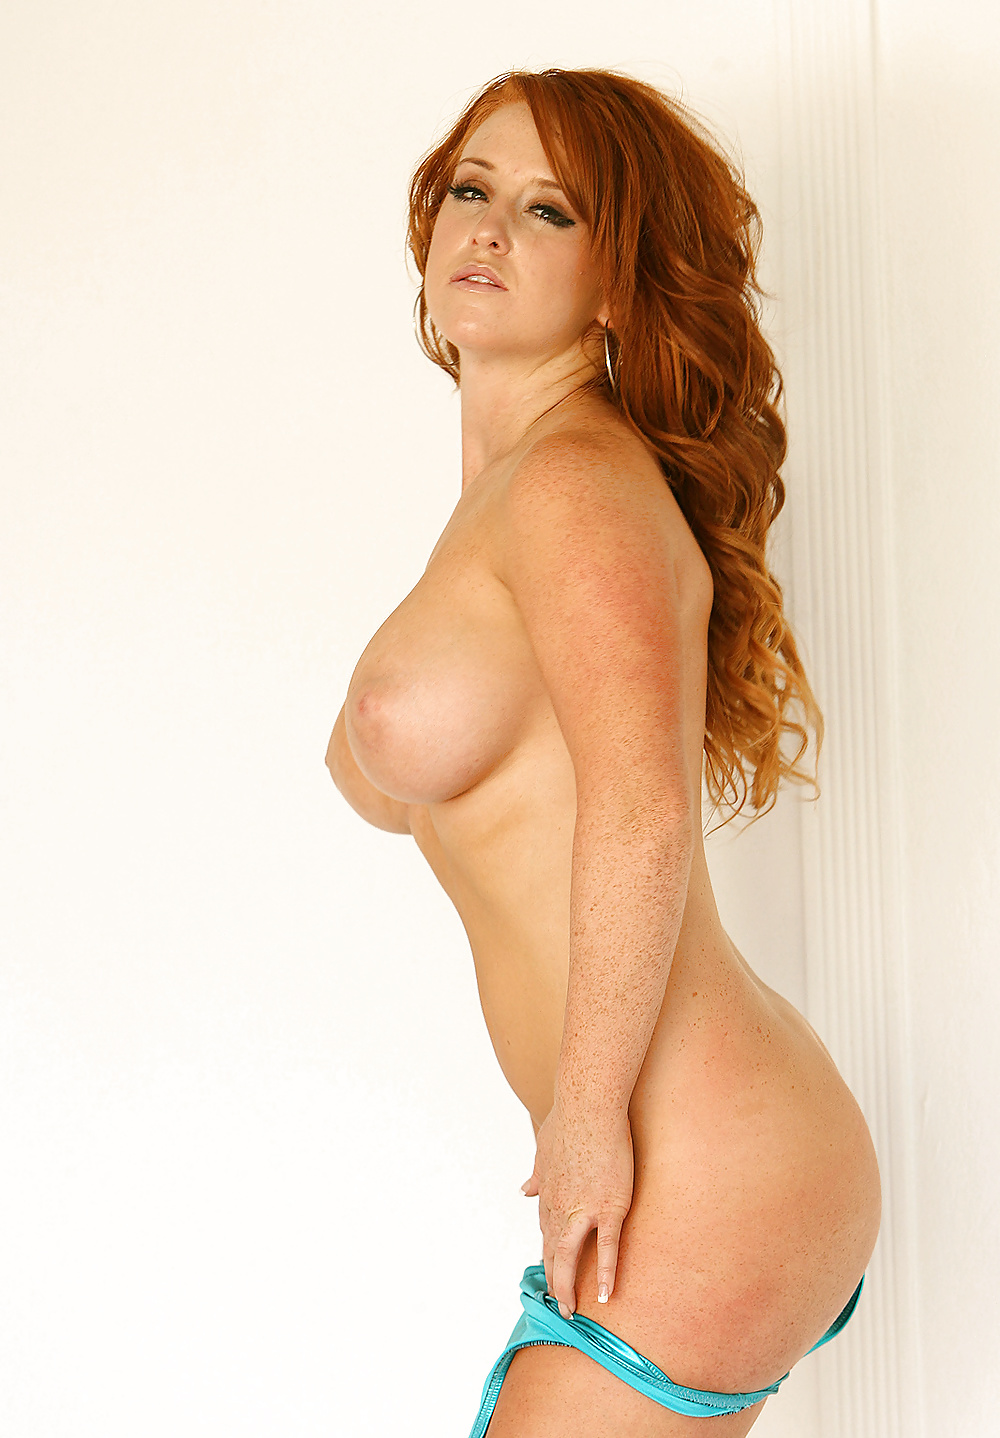 Kate adams naked, topic suck own female